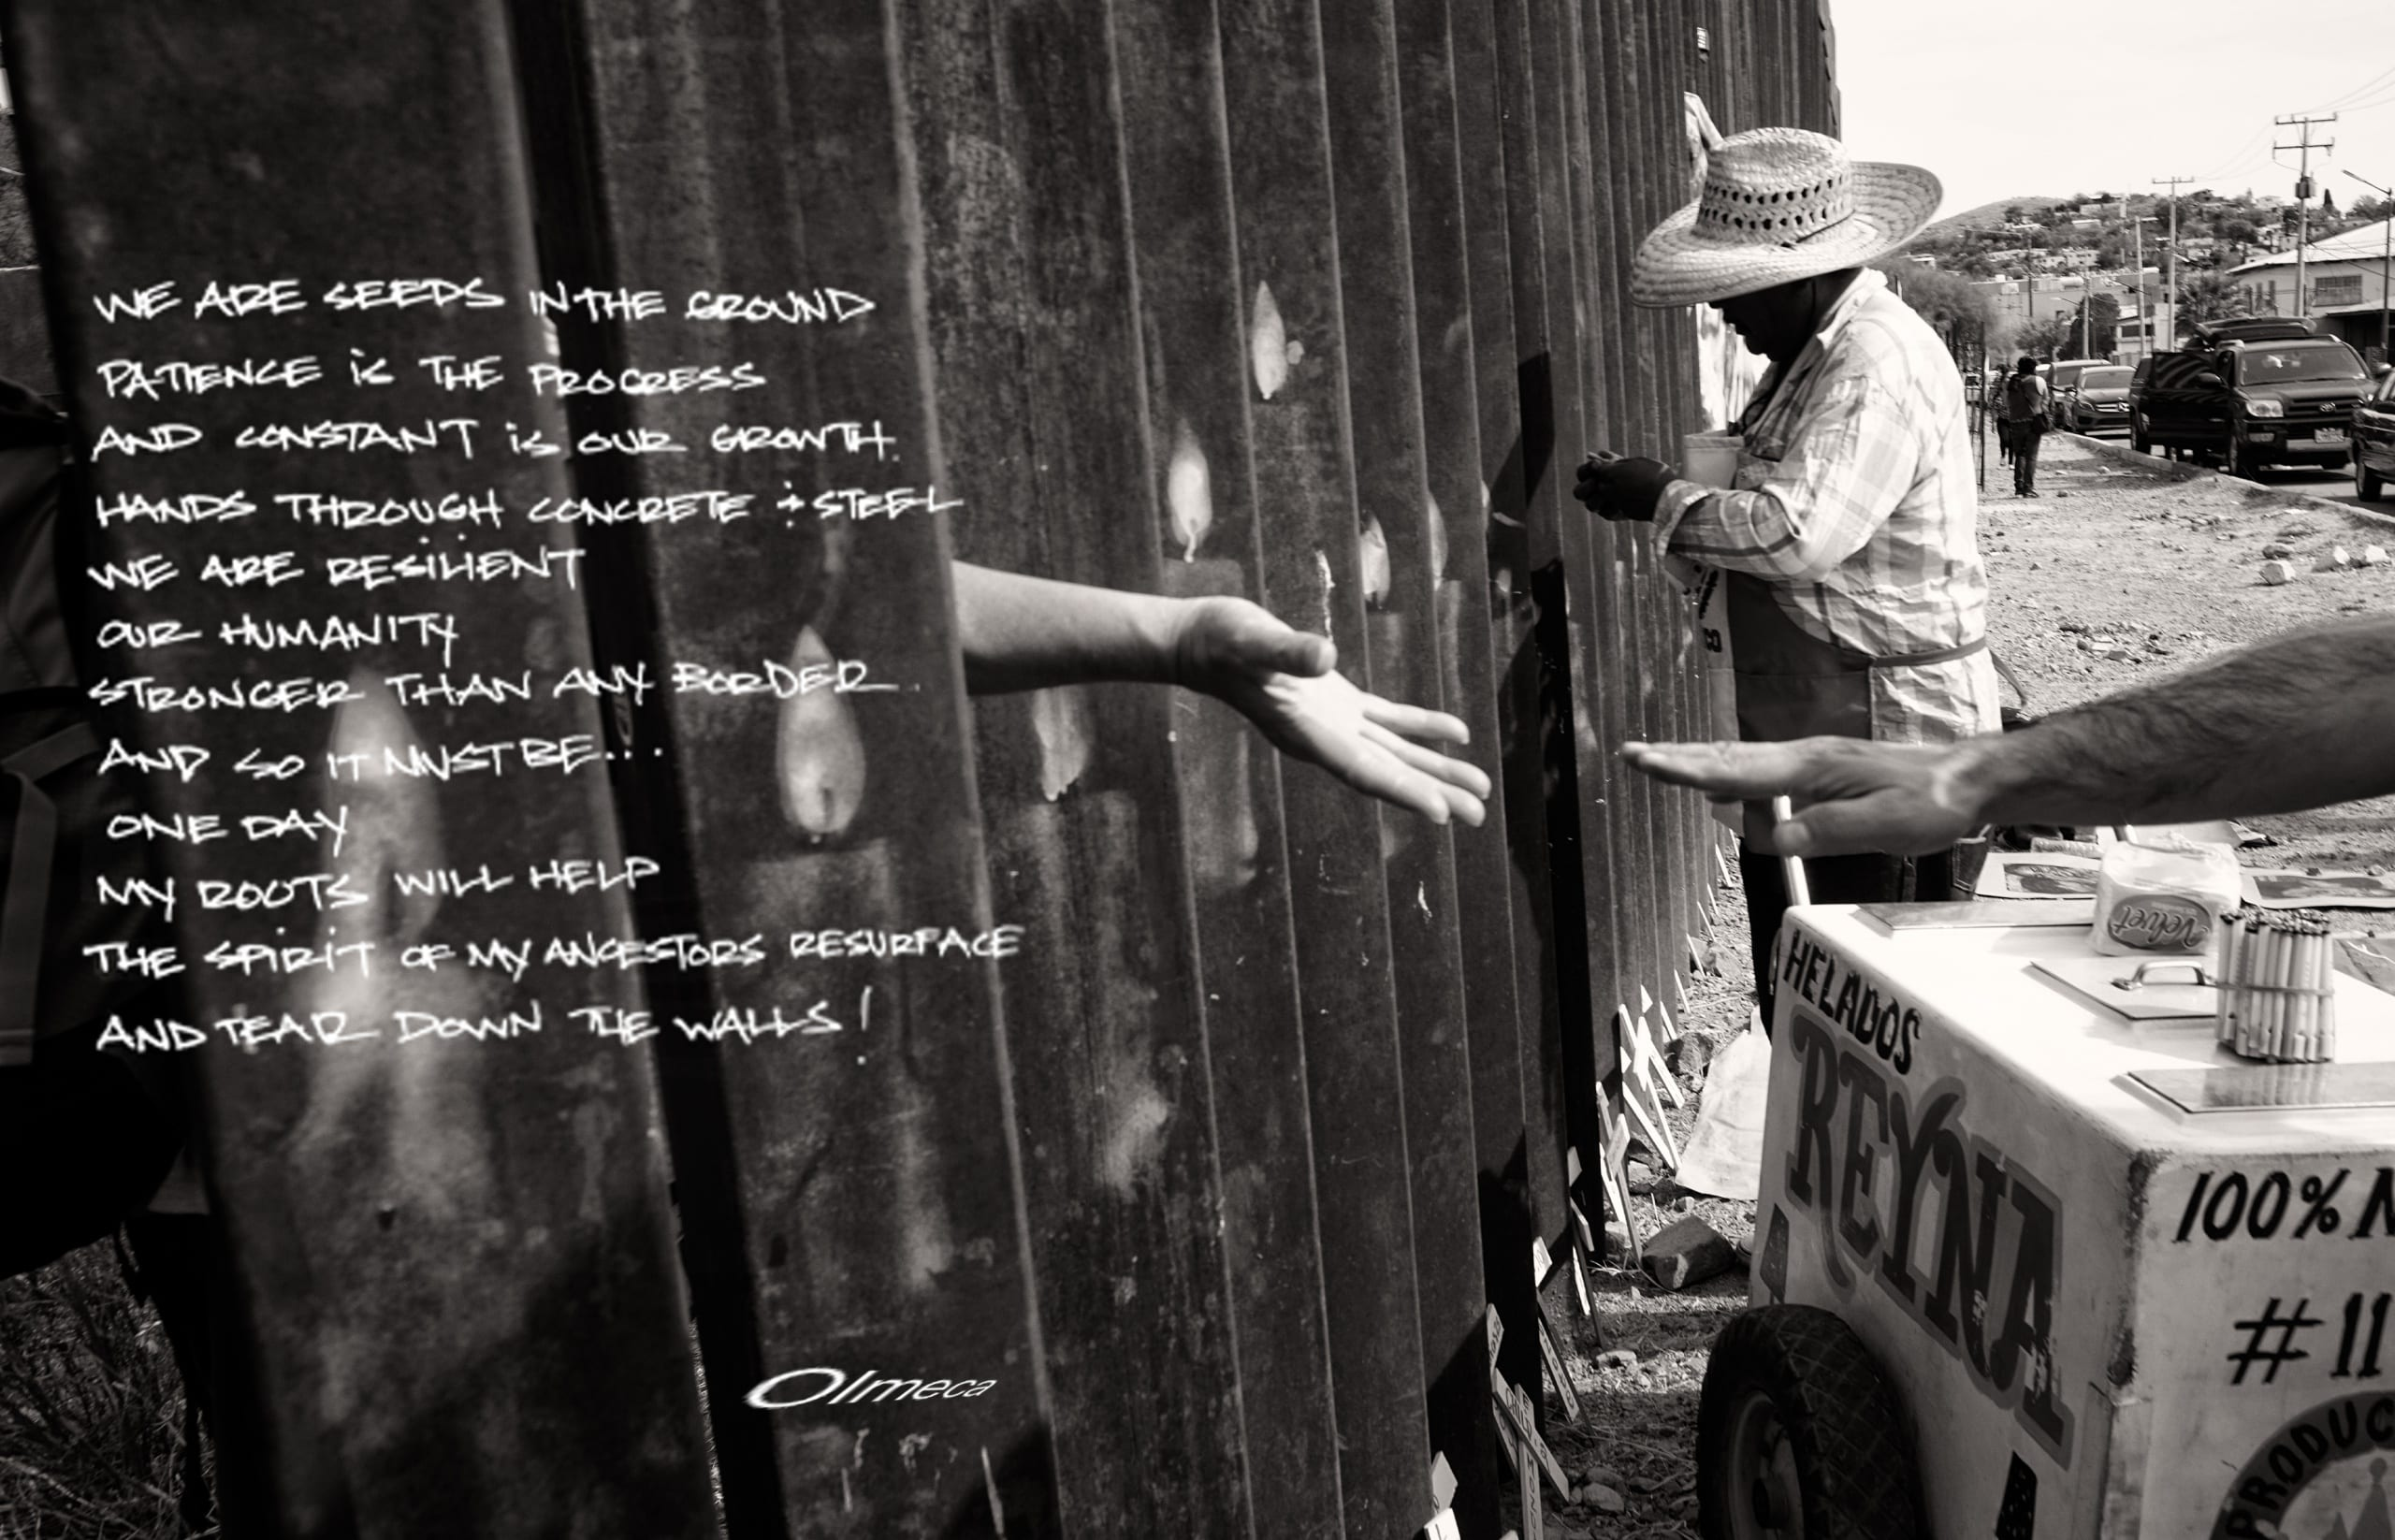 Black and white photo of the US-Mexico border wall built by the United States. A hand strains to reach out through the left-hand side of the image/wall; another hand reaches to meet it from the right-hand side of the border/image. A poem is superimposed over the image's left side.